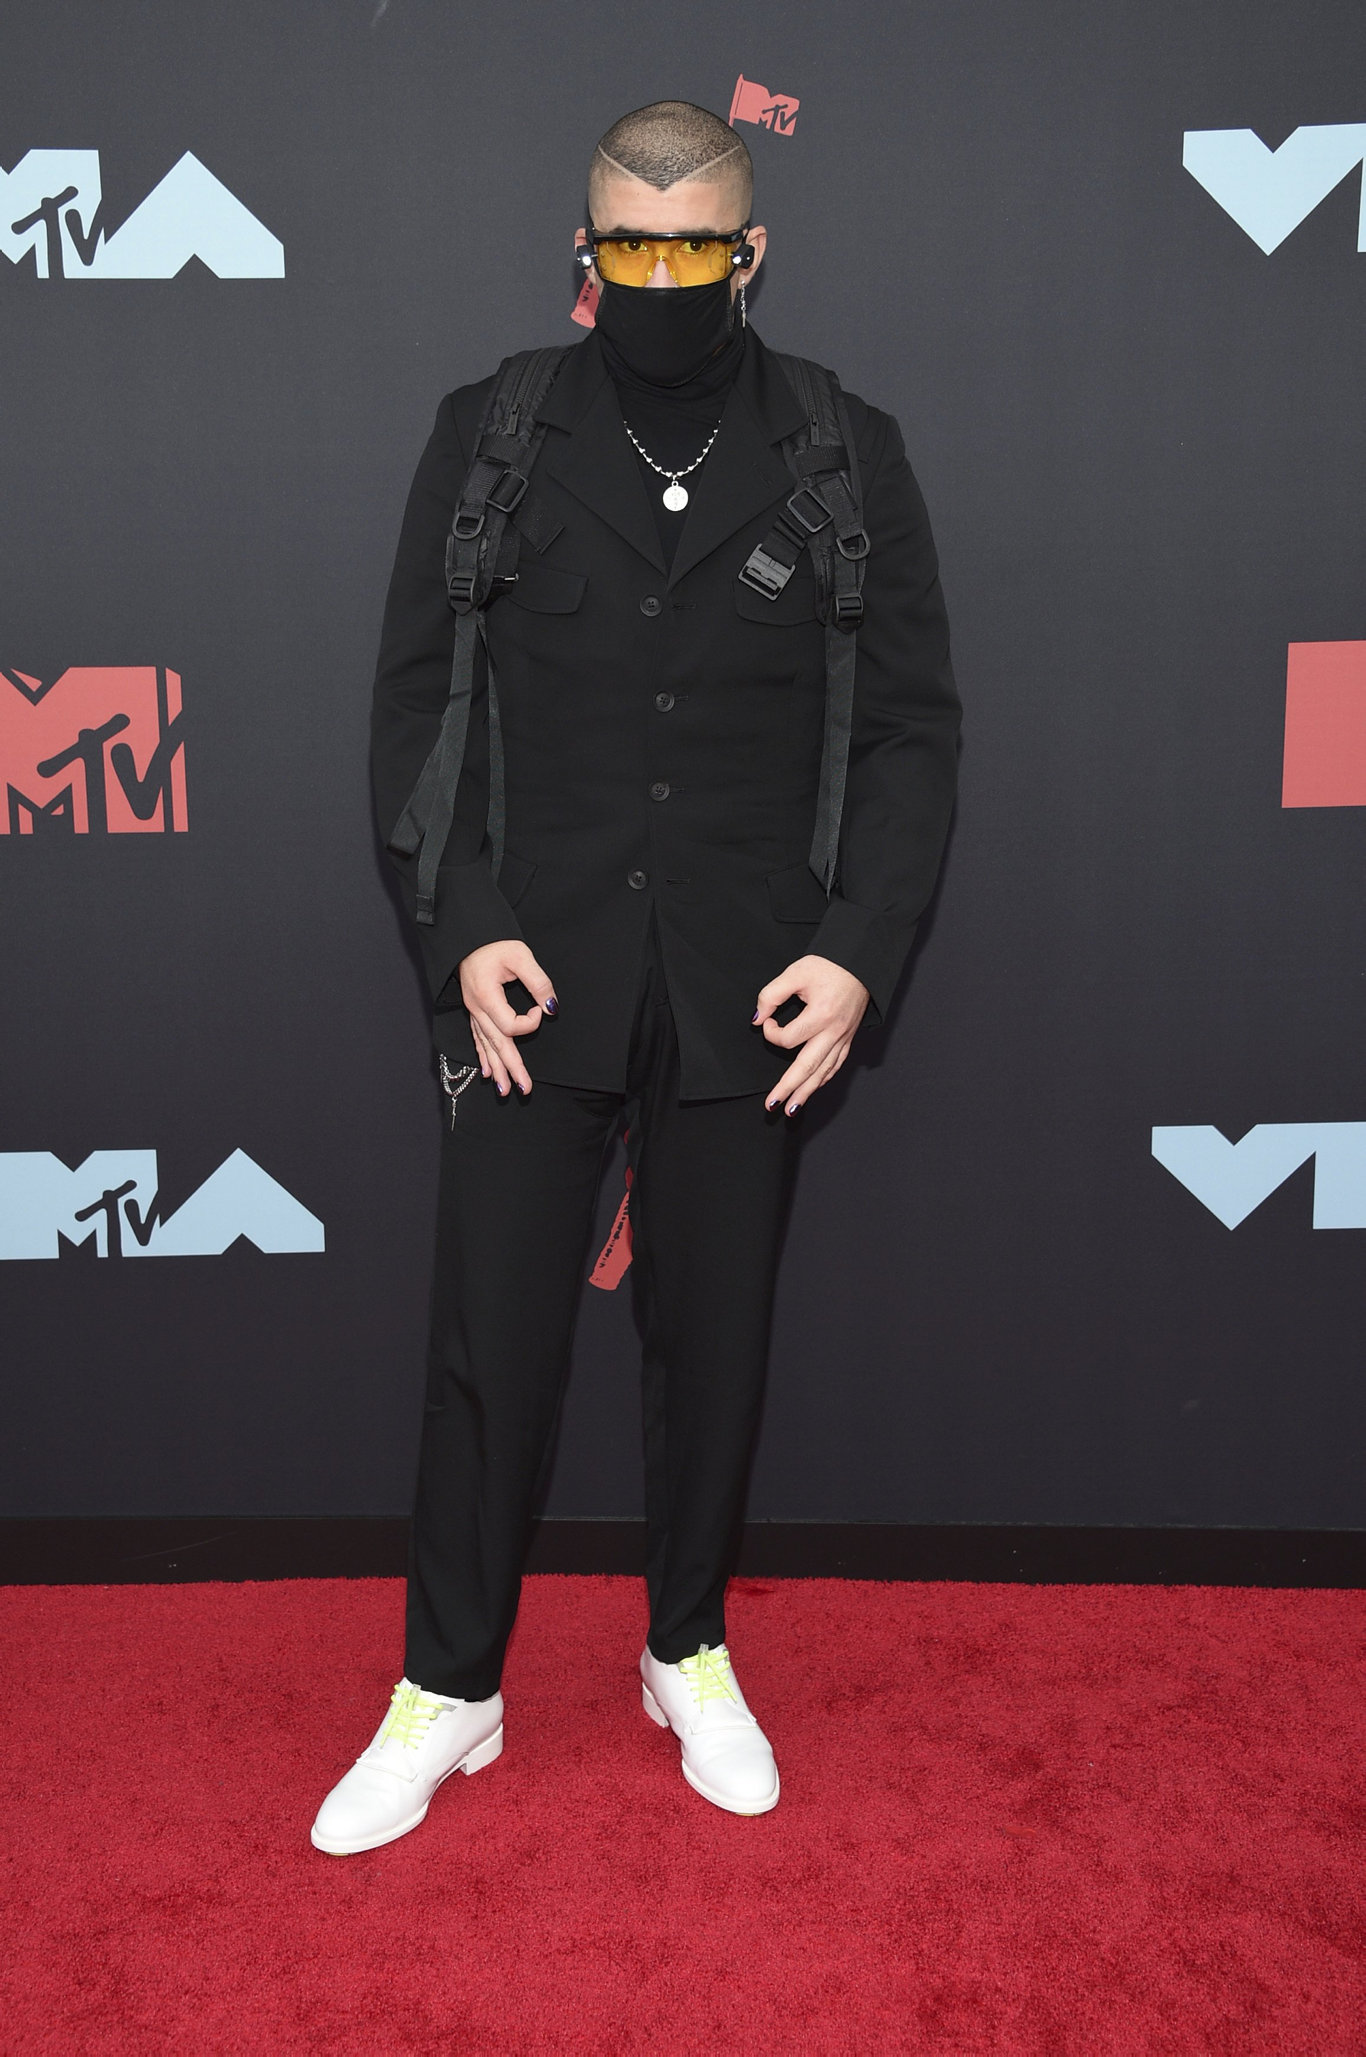 Bad Bunny arrives at the MTV Video Music Awards at the Prudential Center on Monday, Aug. 26, 2019, in Newark, N.J.